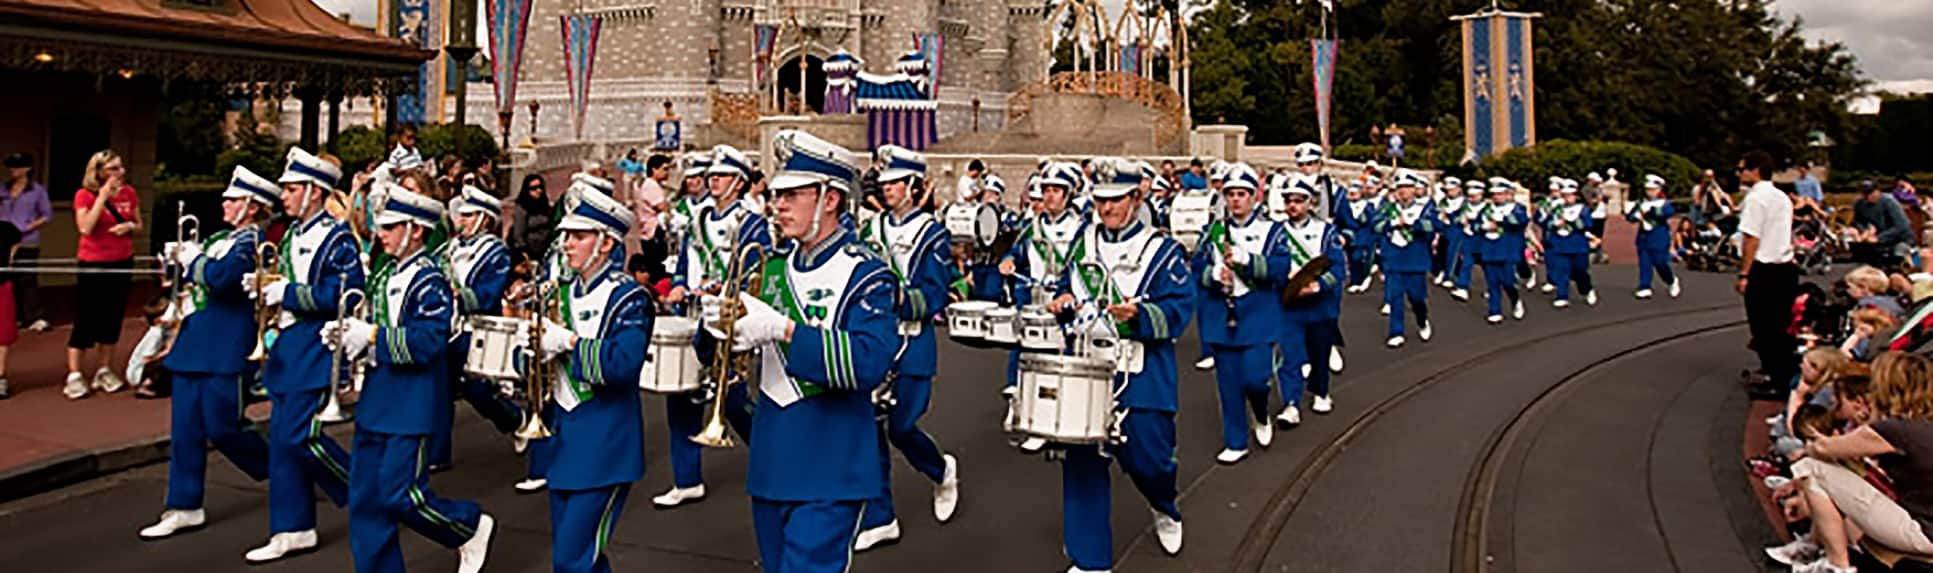 A marching band performing for park Guests